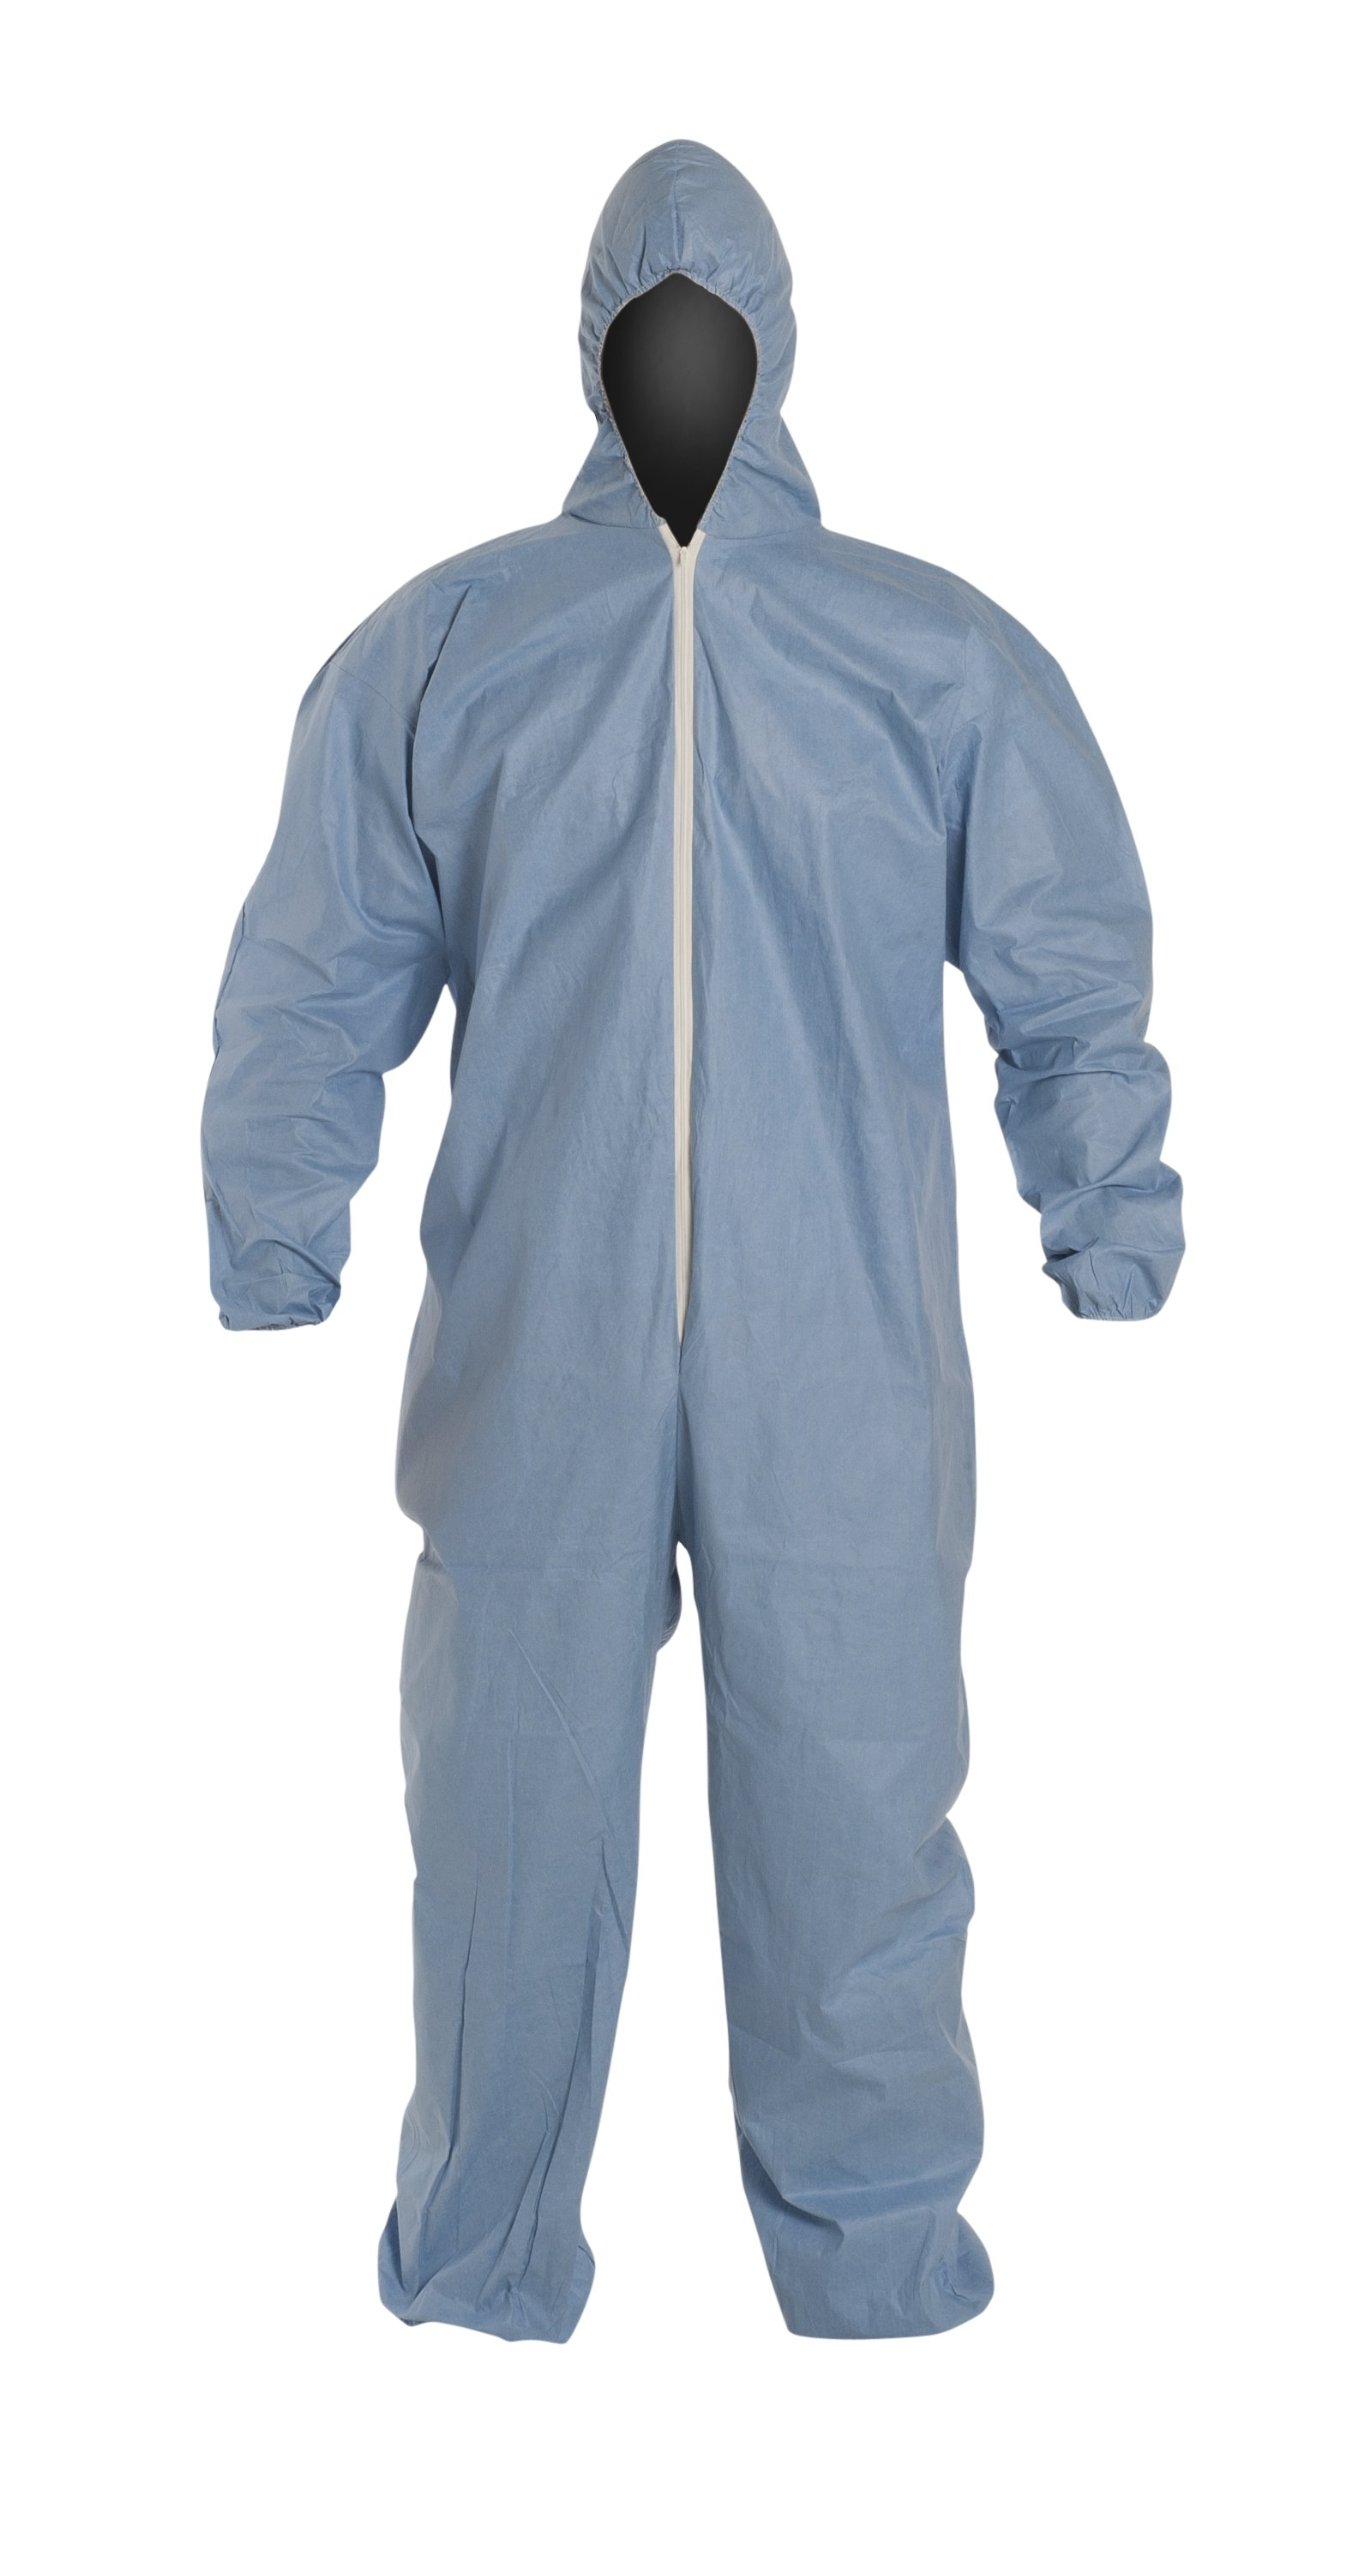 DuPont Proshield 6 TM127S Secondary Flame Resistant Coverall with Attached Hood, Blue, X-Large (Case of 25)